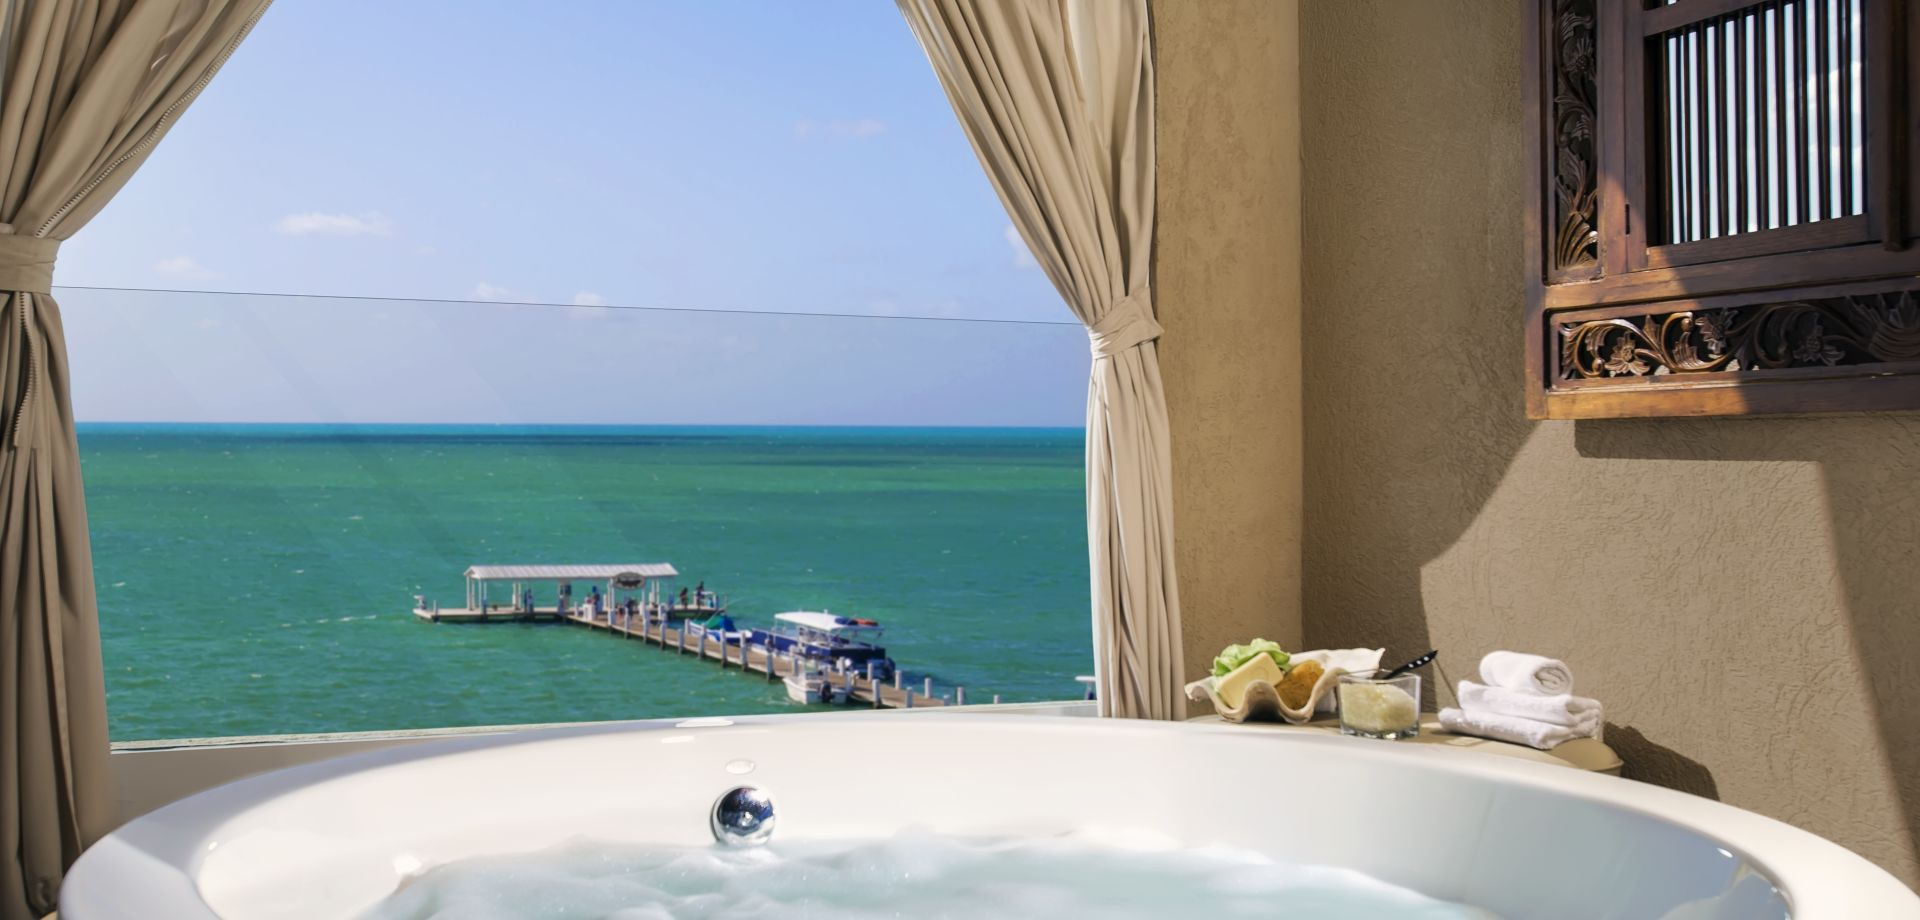 <strong>Legendary Relaxation</strong> In an oceanfront suite